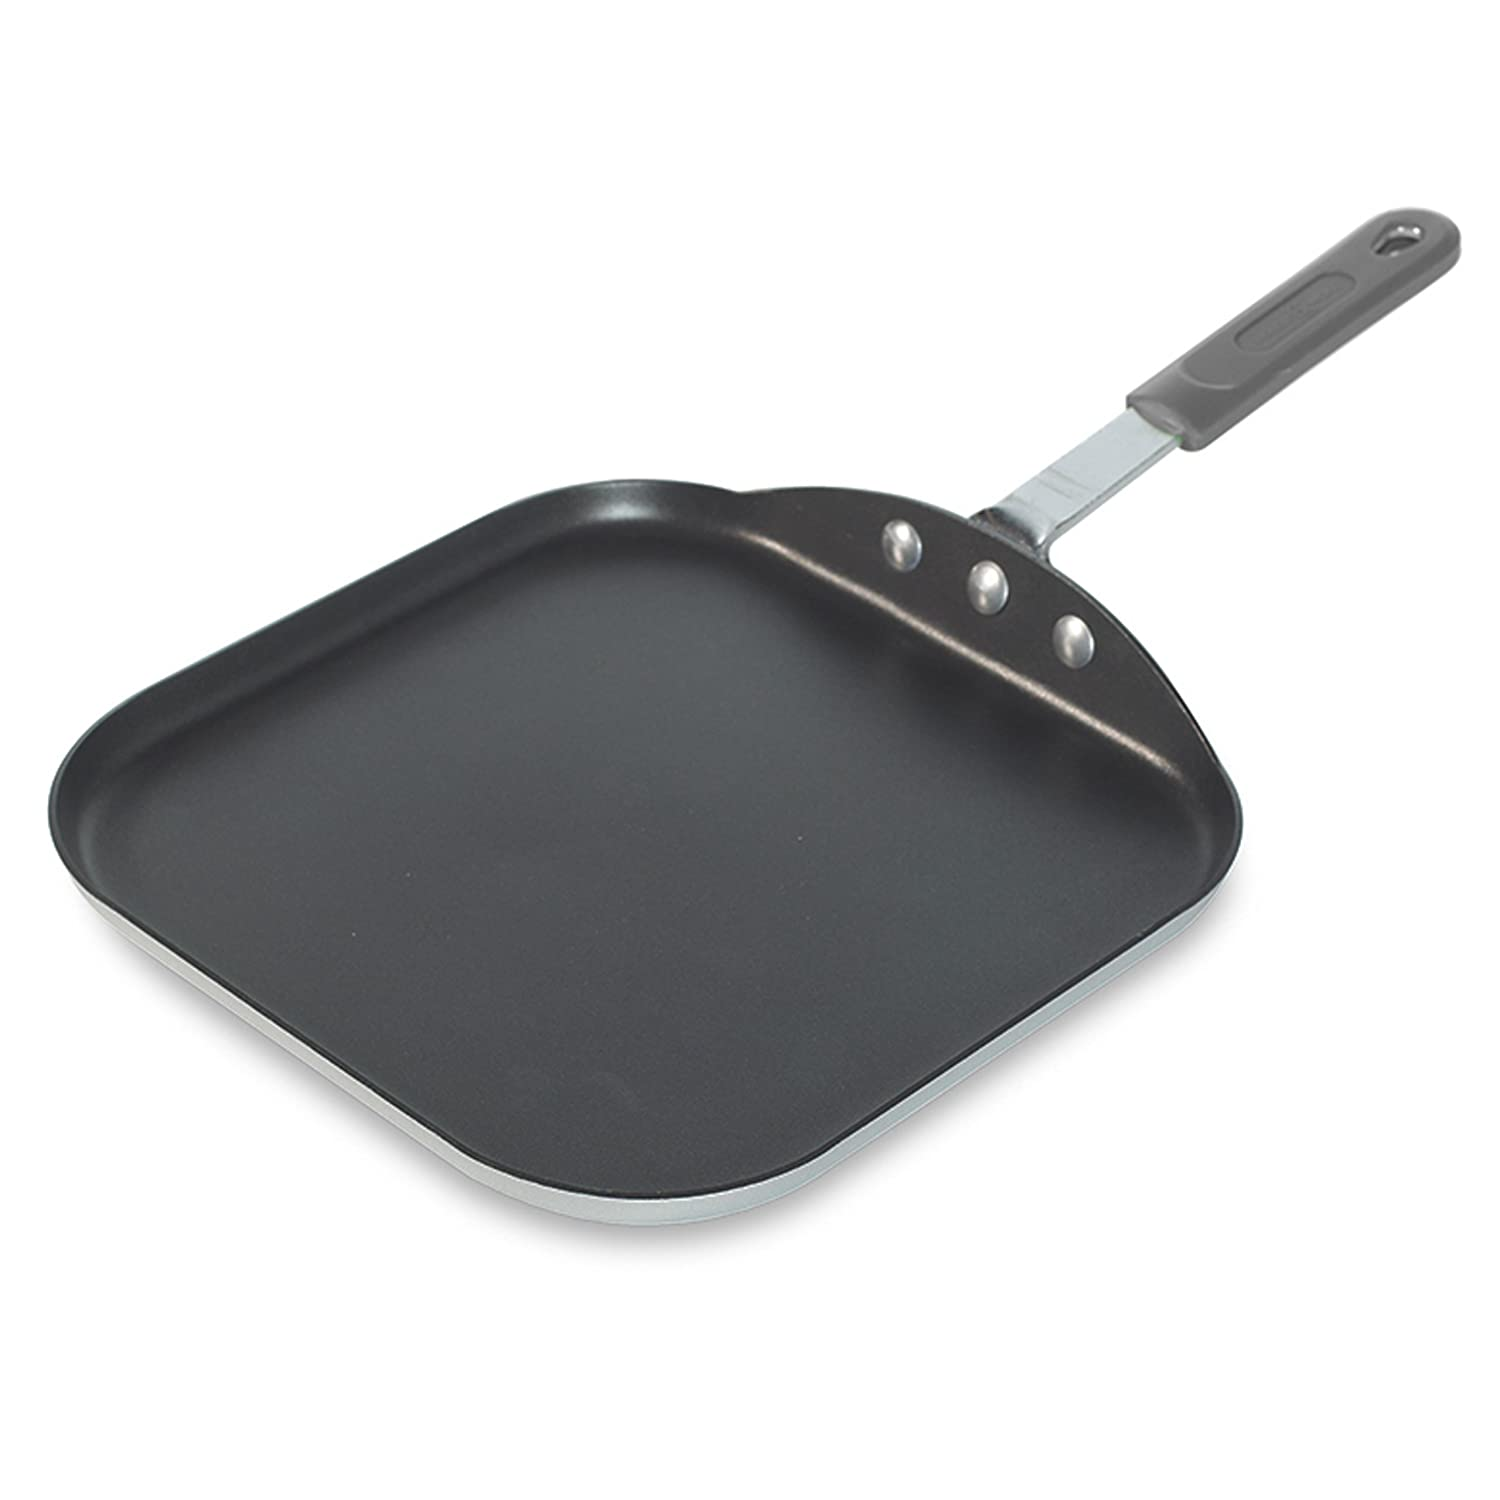 Nordic Ware Restaurant Cookware Square Griddle, 11.5 Inch